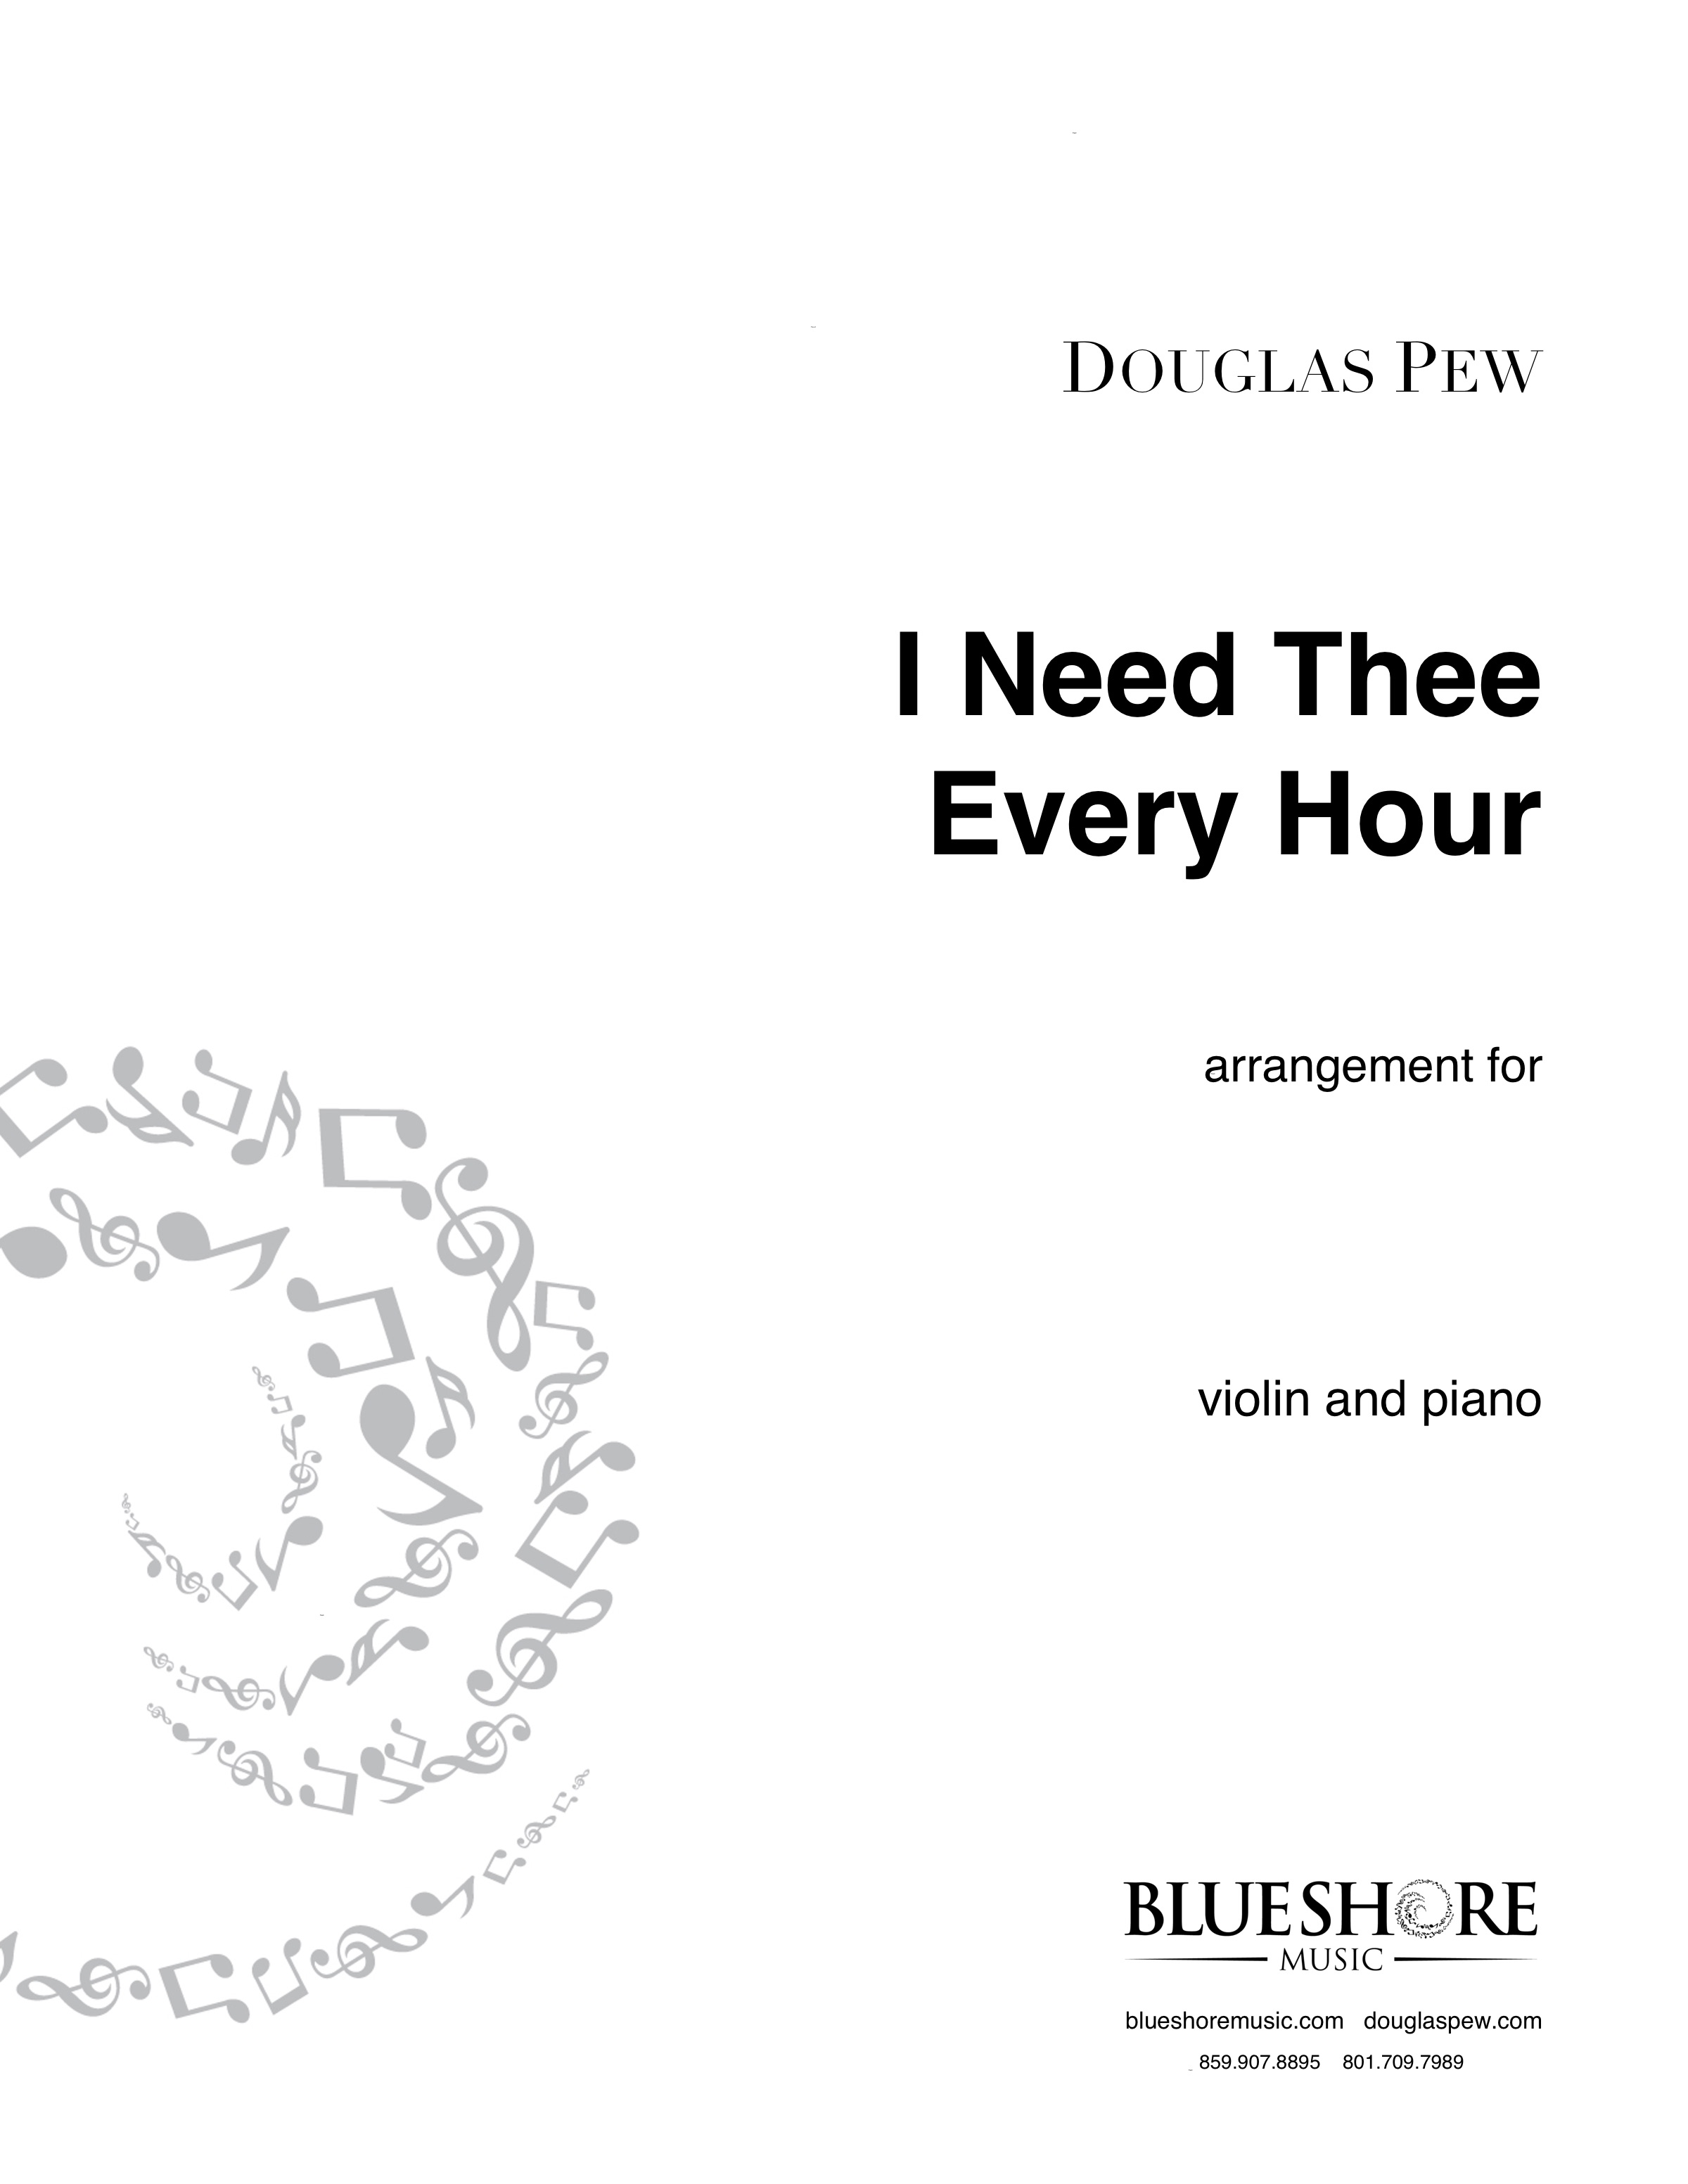 I Need Thee Every Hour  - *COMING SOON*